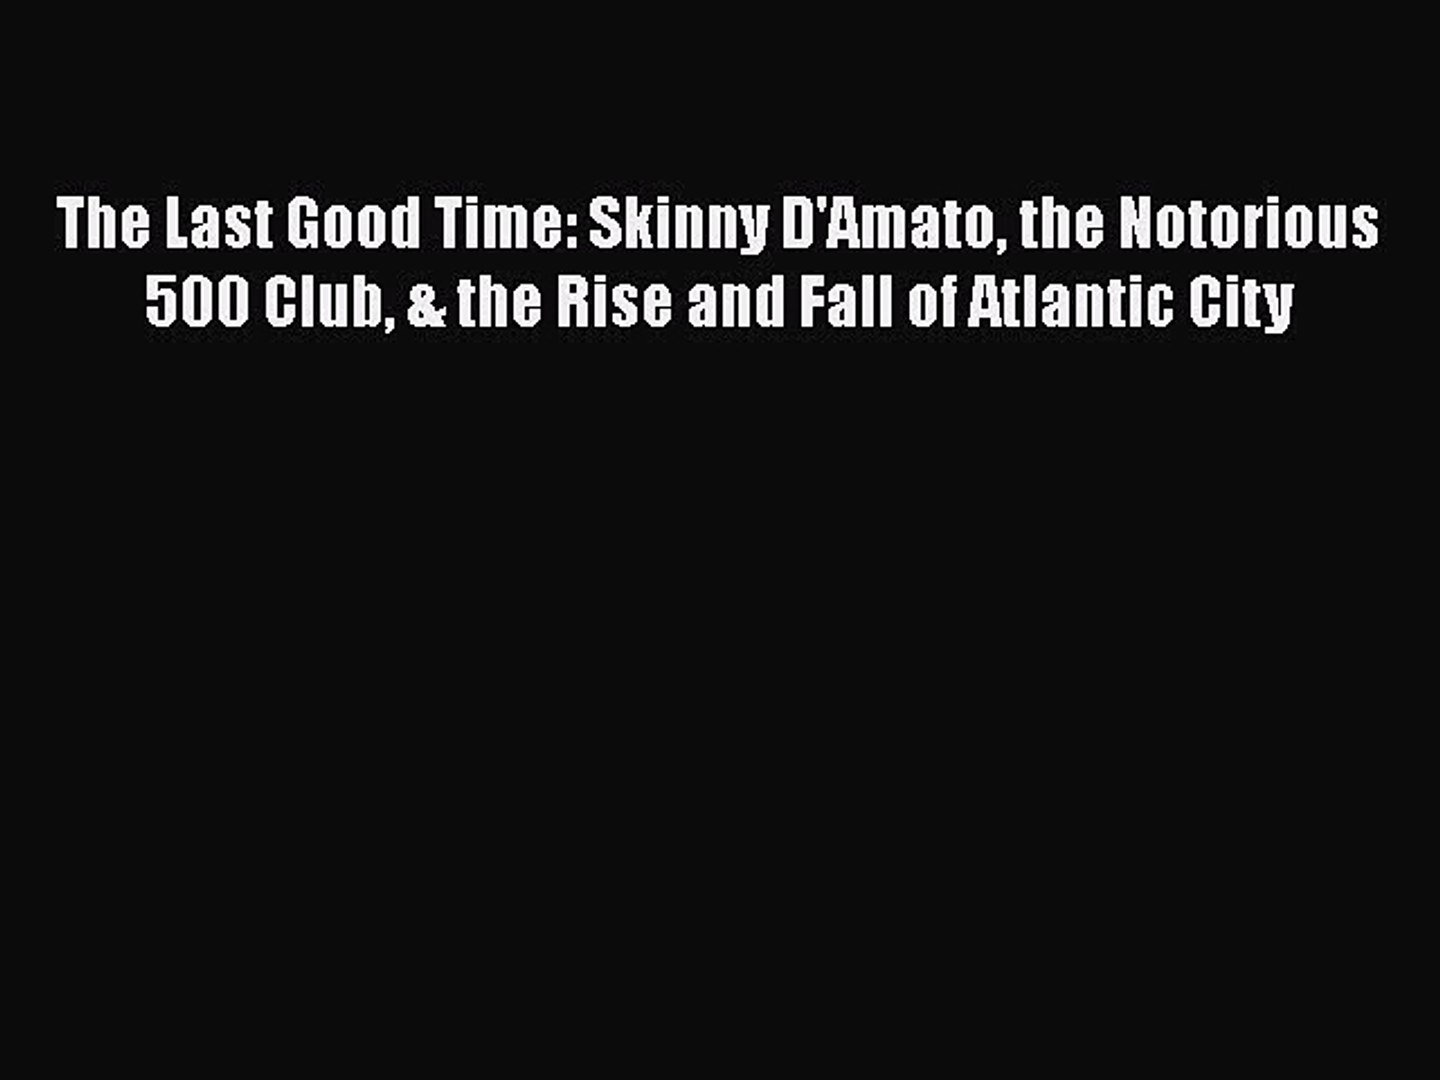 PDF The Last Good Time: Skinny D'Amato the Notorious 500 Club & the Rise and Fall of Atlant